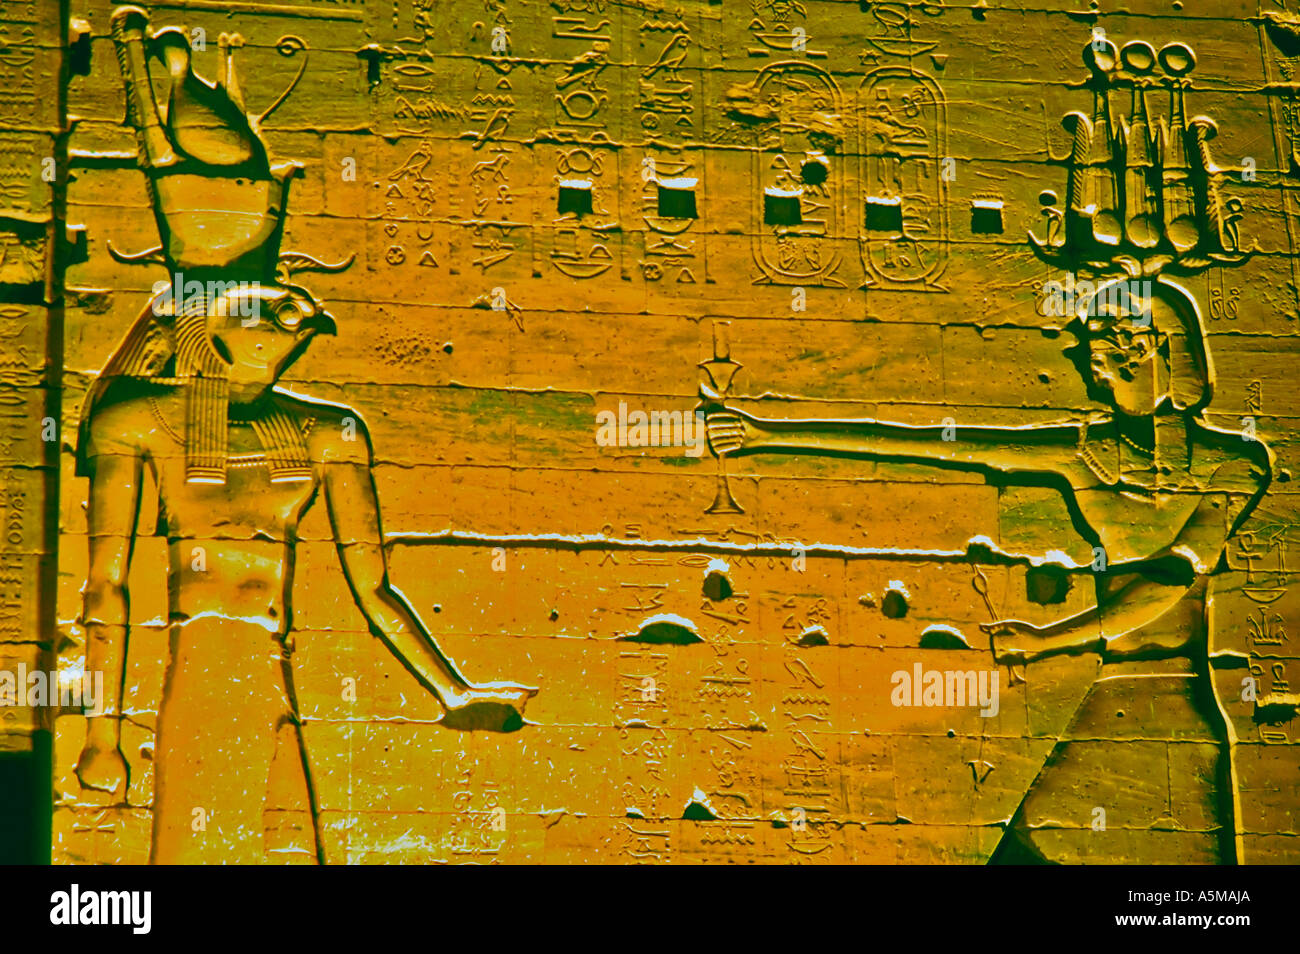 Philae Egypt, Ancient Art, Hieroglyphic, Low Relief on Wall Lit up ...